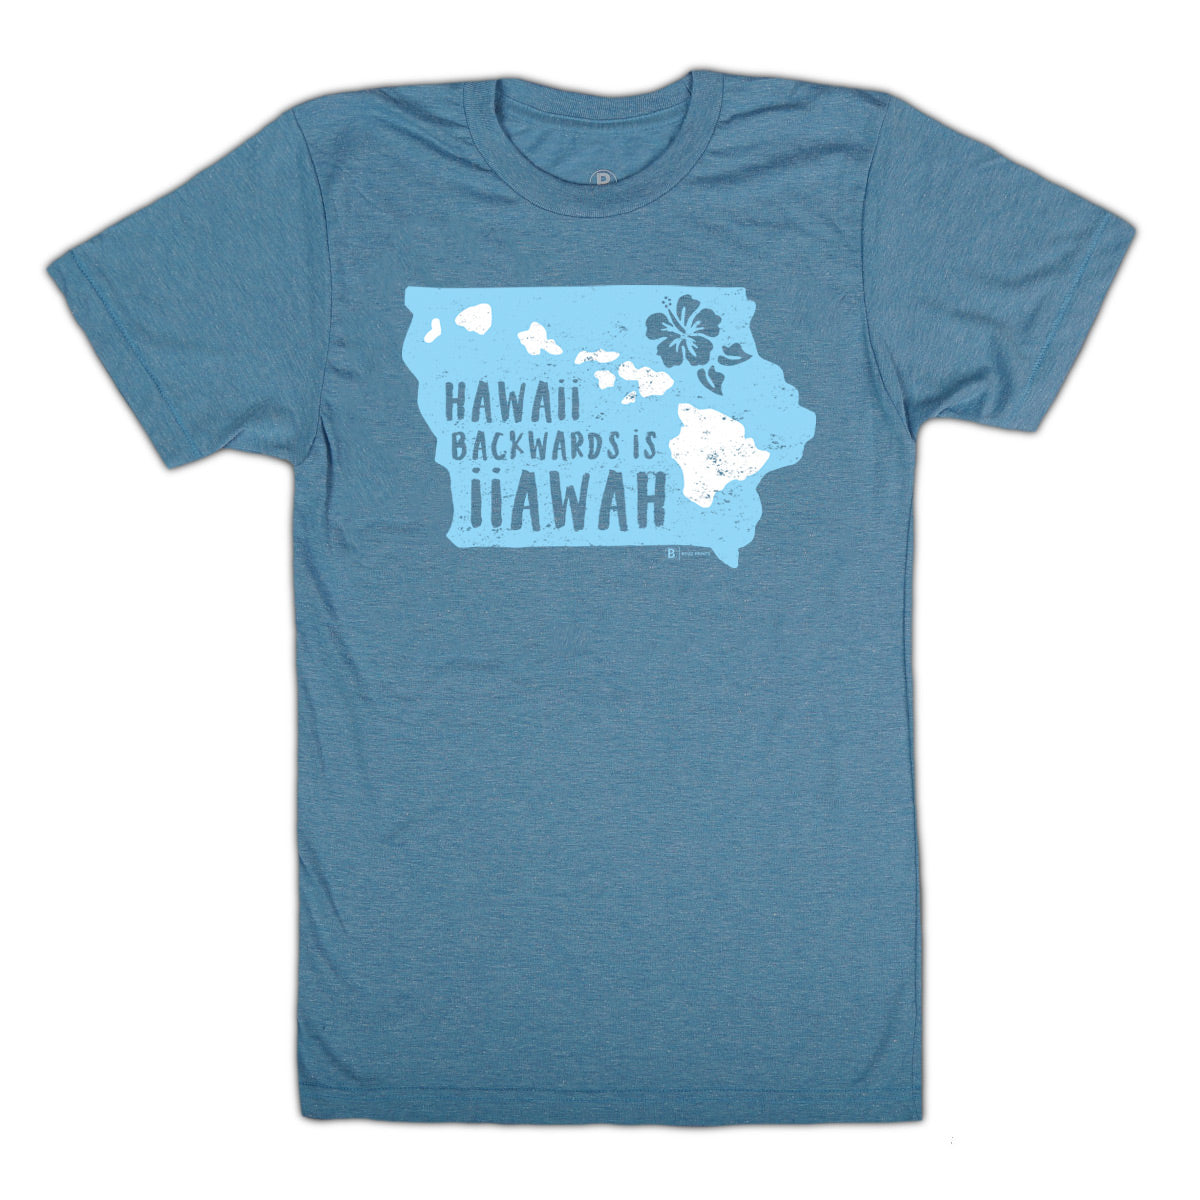 Hawaii Backwards is Iiawah Ocean Blue T-Shirt